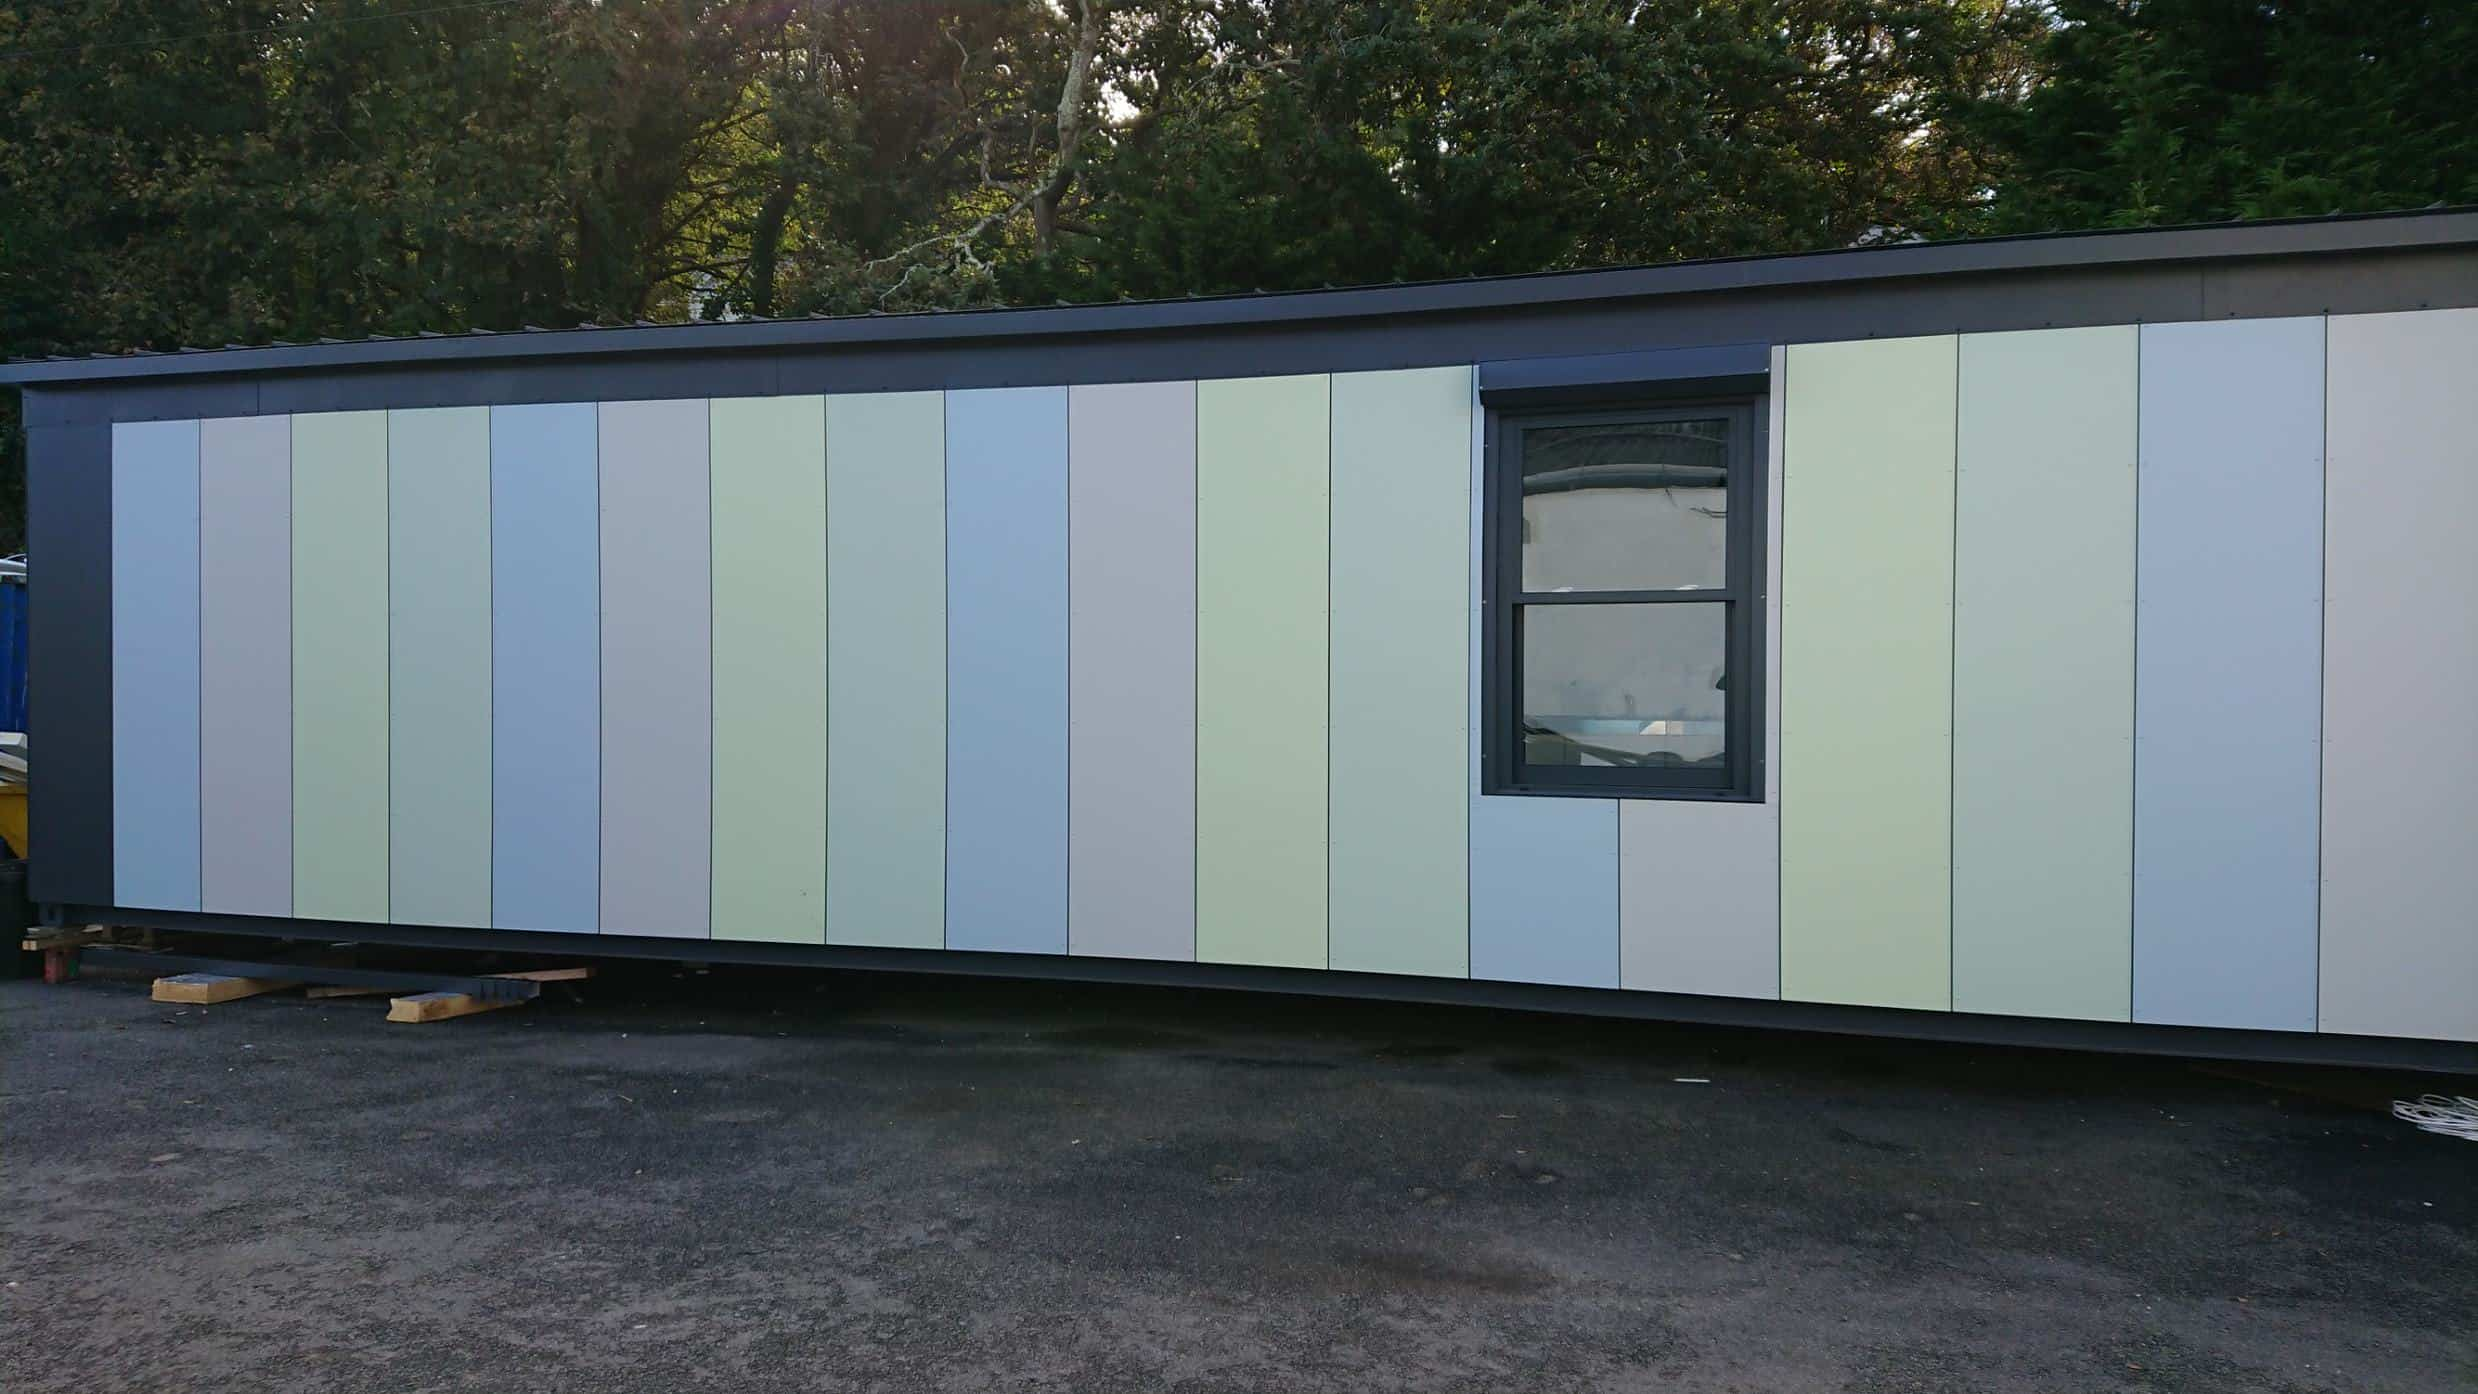 Shipping container conversion ready to be transported